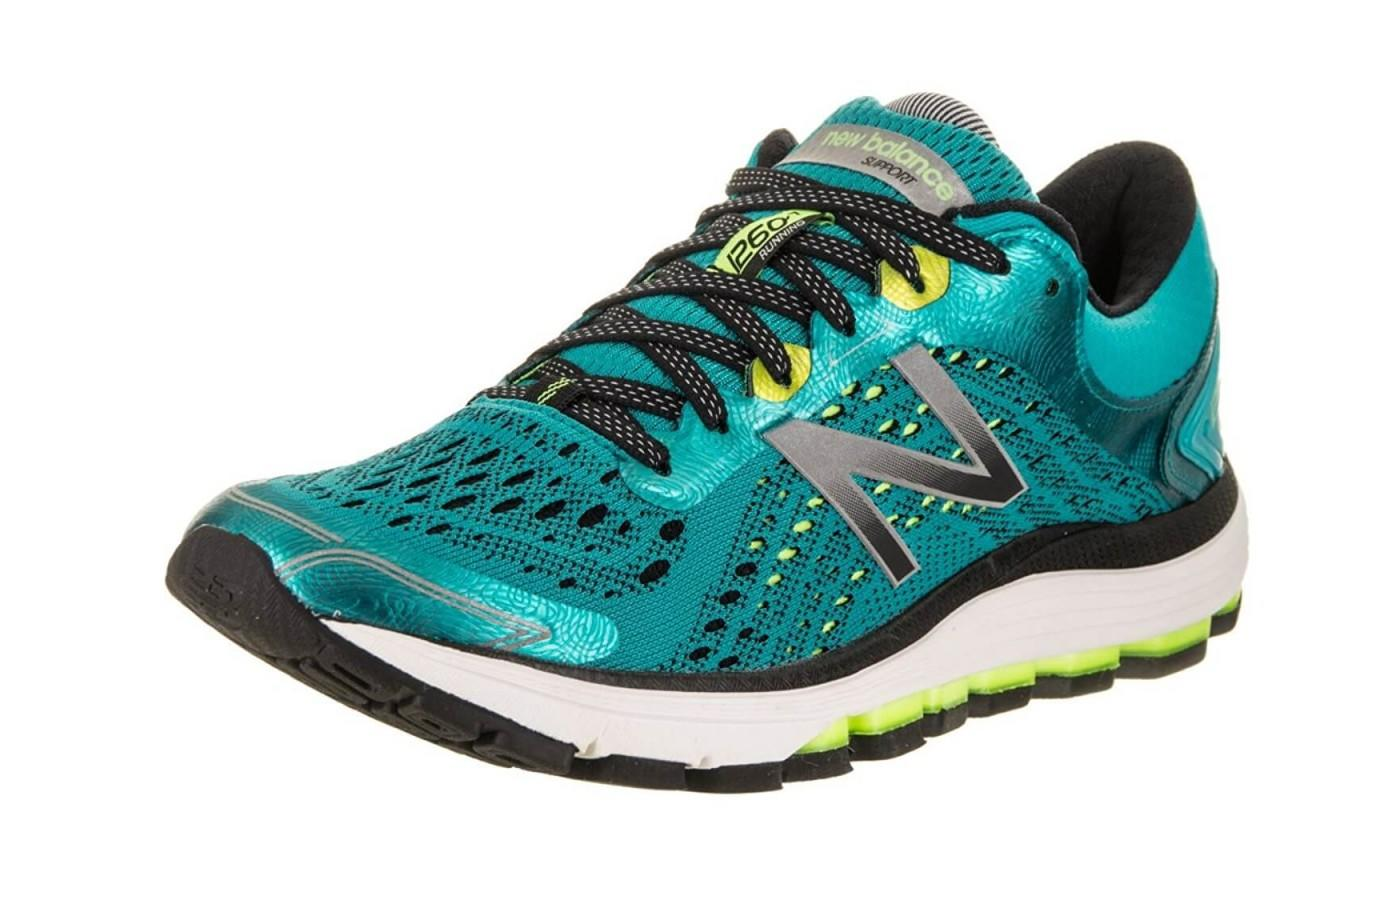 The New Balance 1260 V7 offers stability support for runners.